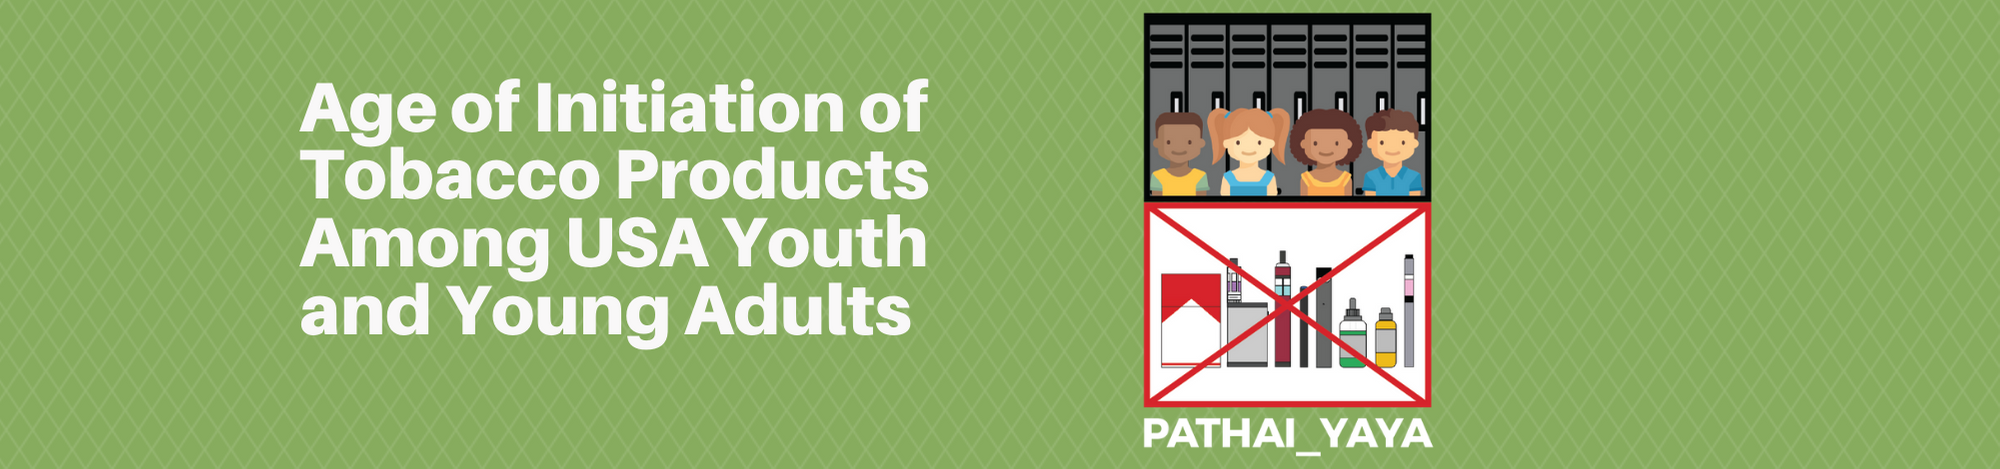 Banner image for Age of Initiation of Tobacco Products Among USA Youth and Young Adults